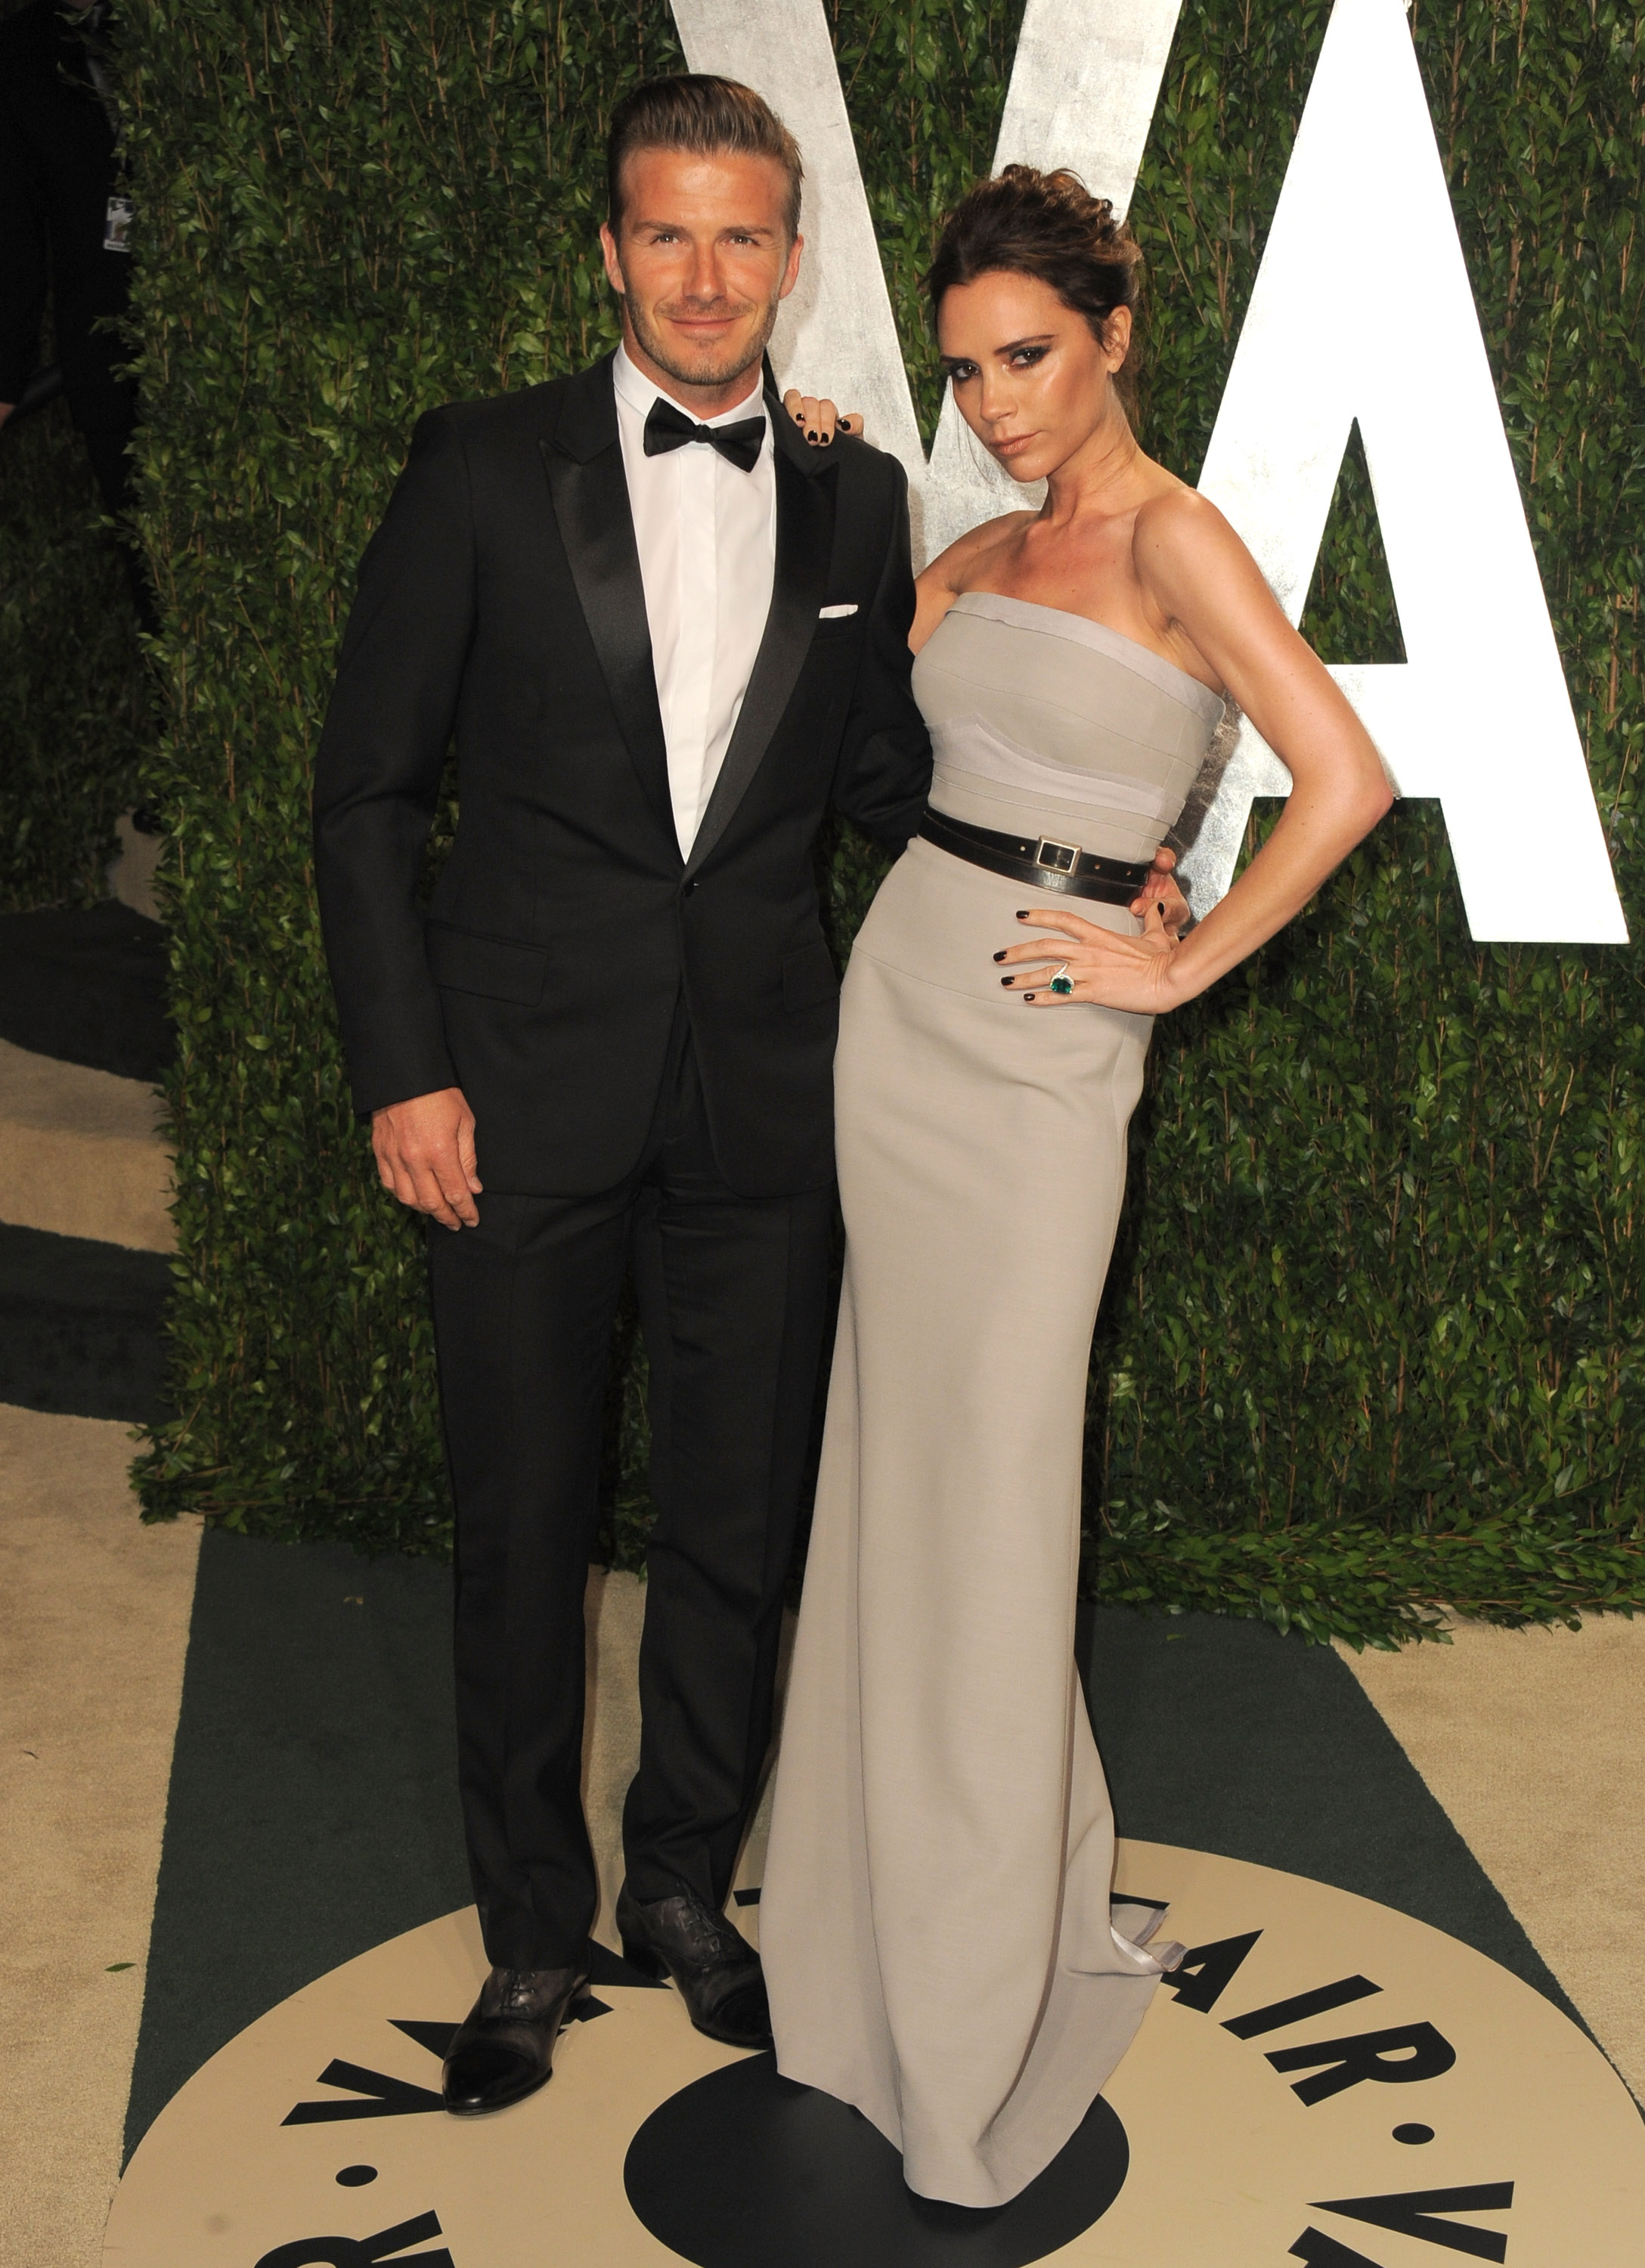 David and Victoria Beckham at the Vanity Fair Oscar party.